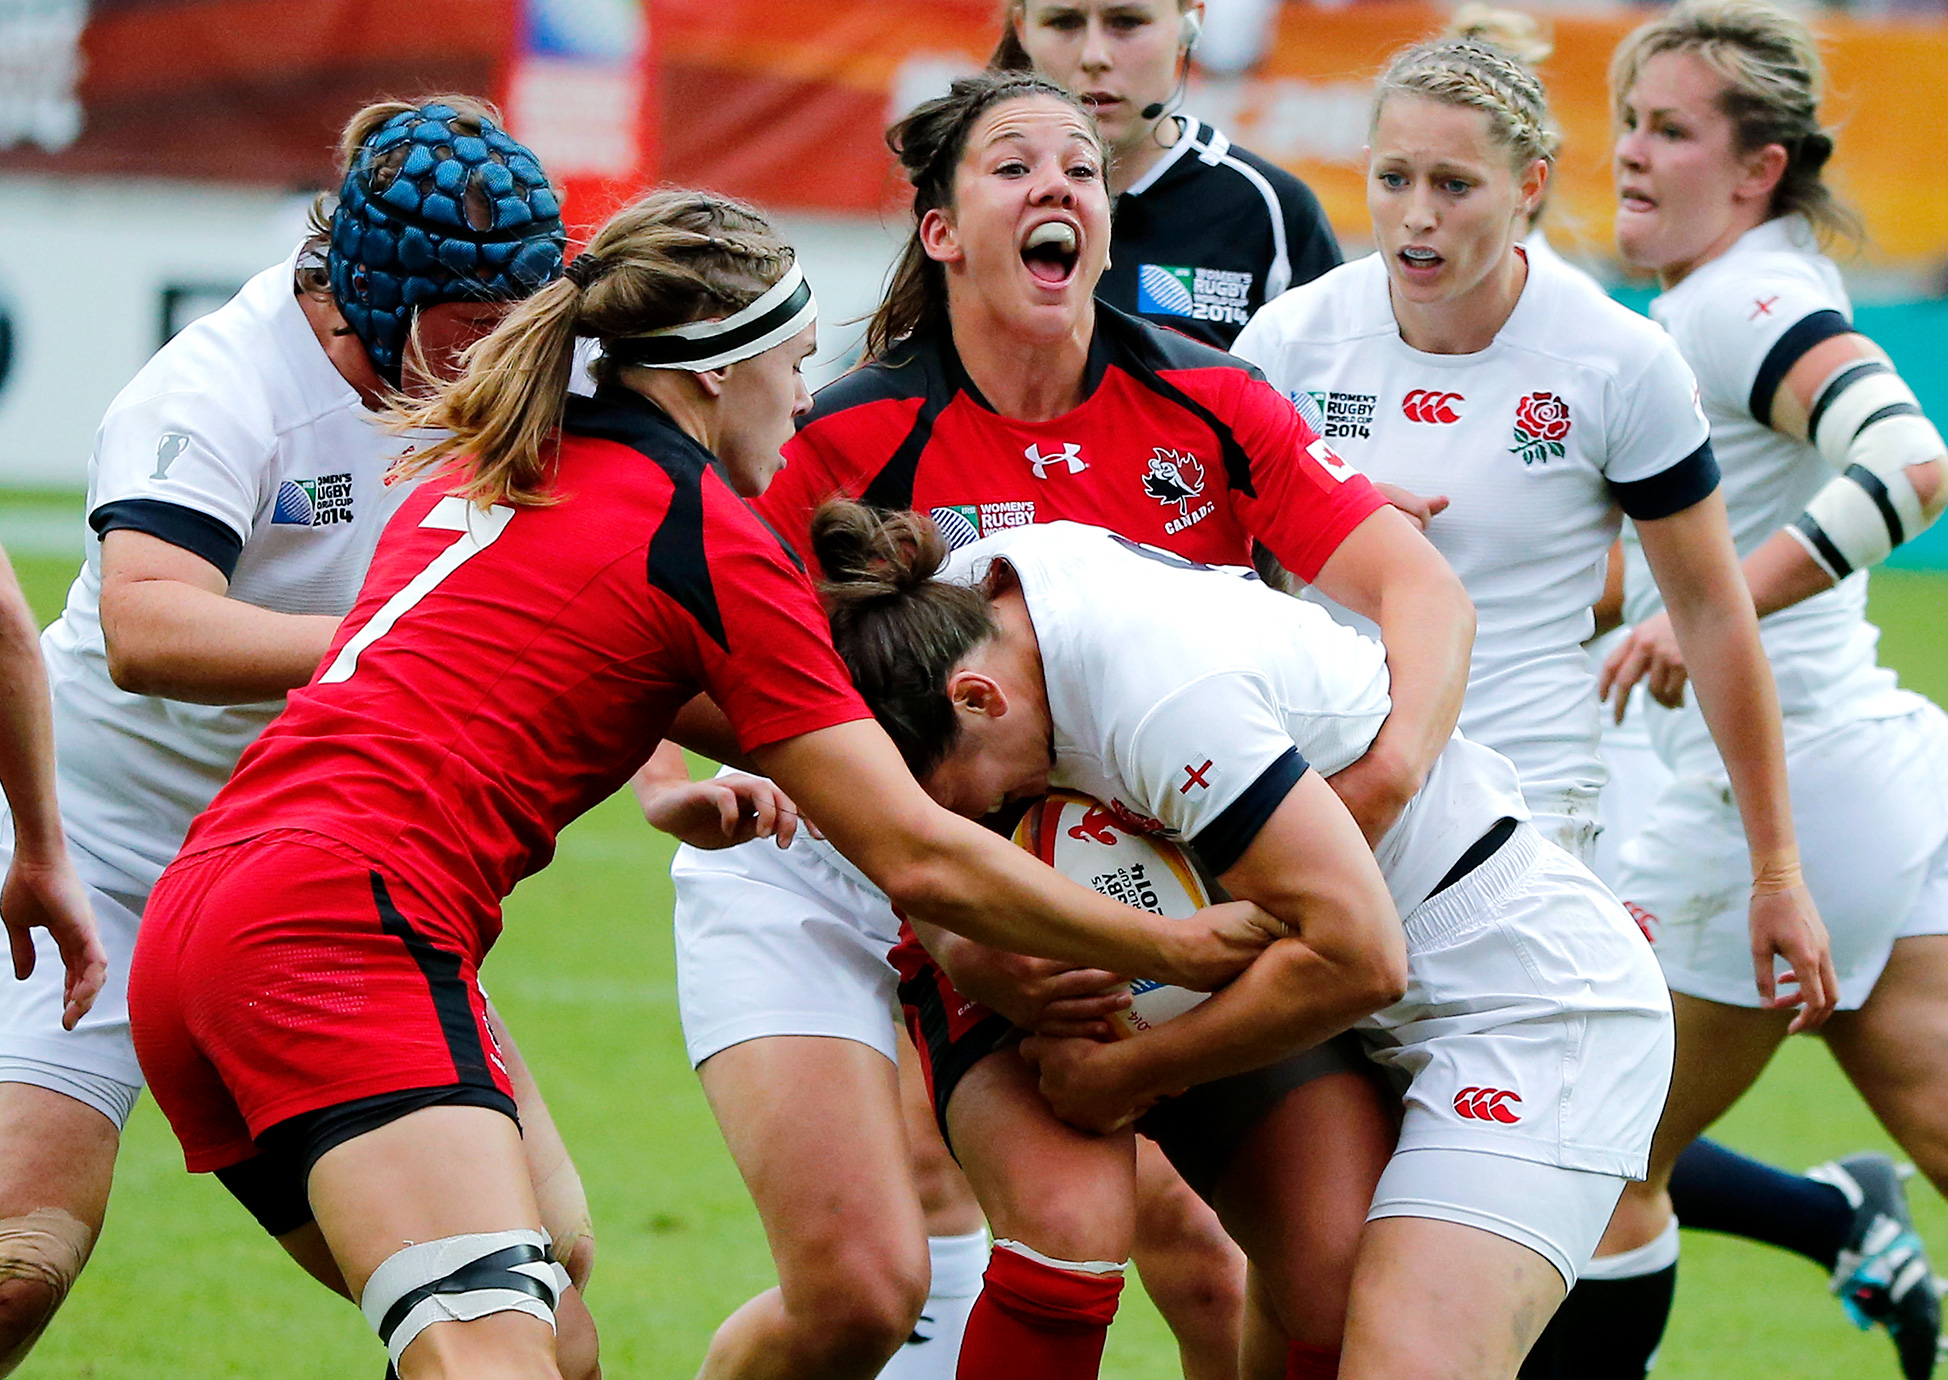 England's Katy McLean, center, is tackled by Jessica Dovanne, right, and Karen Paquin, left, during the final match of the women's rugby World Cup against Canada at Jean Bouin Stadium in Paris. England defeated Canada 21-9.